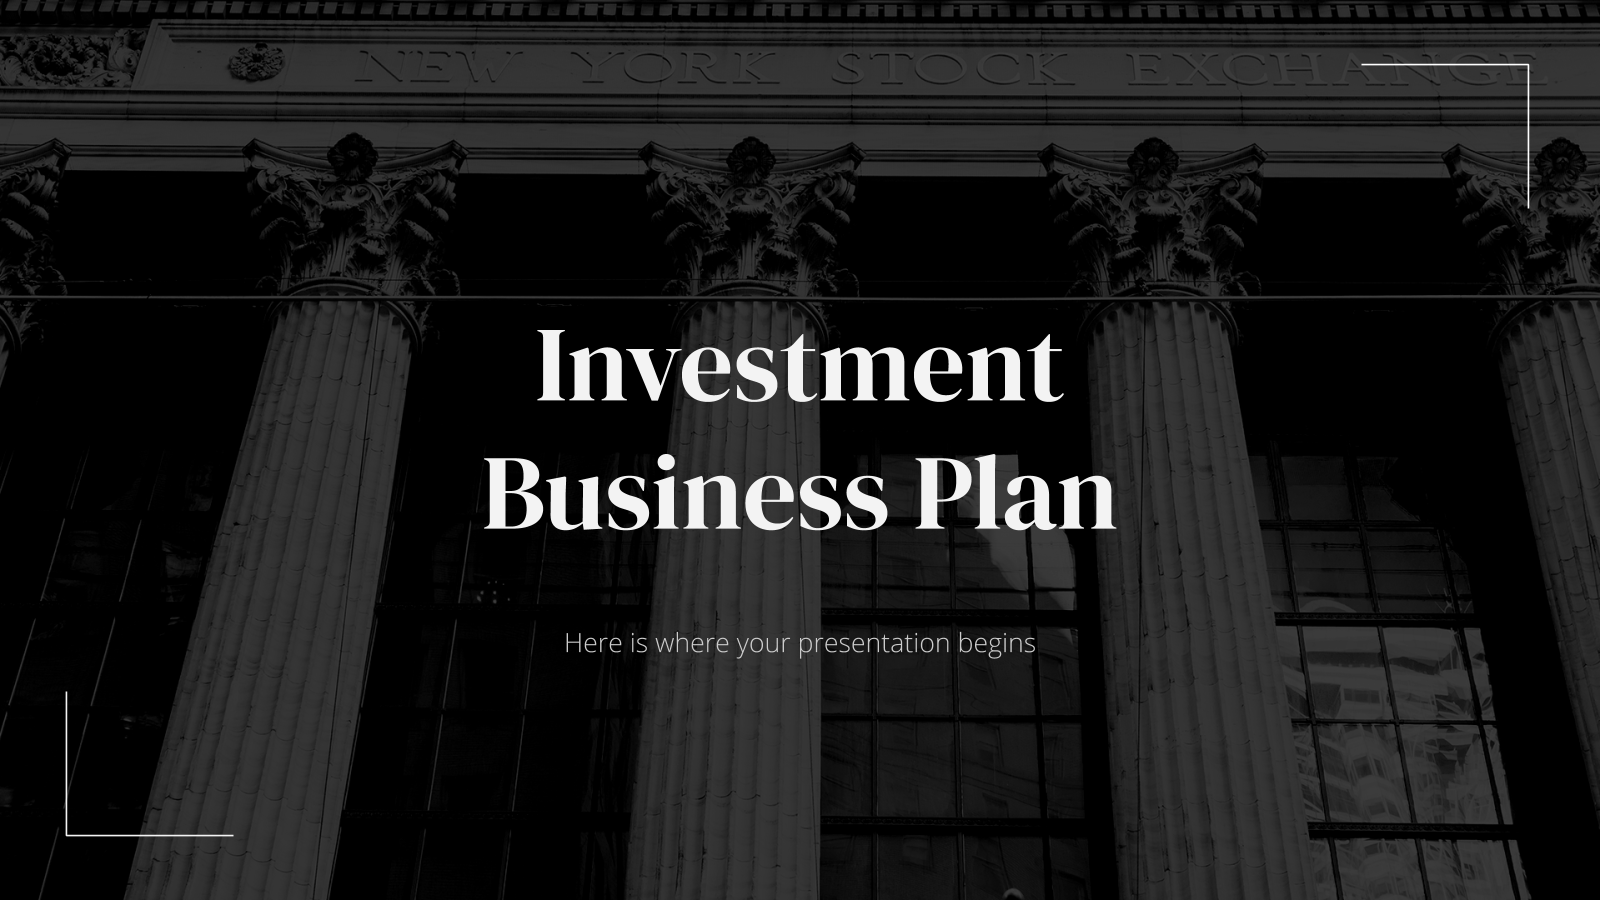 Investment Business Plan presentation template